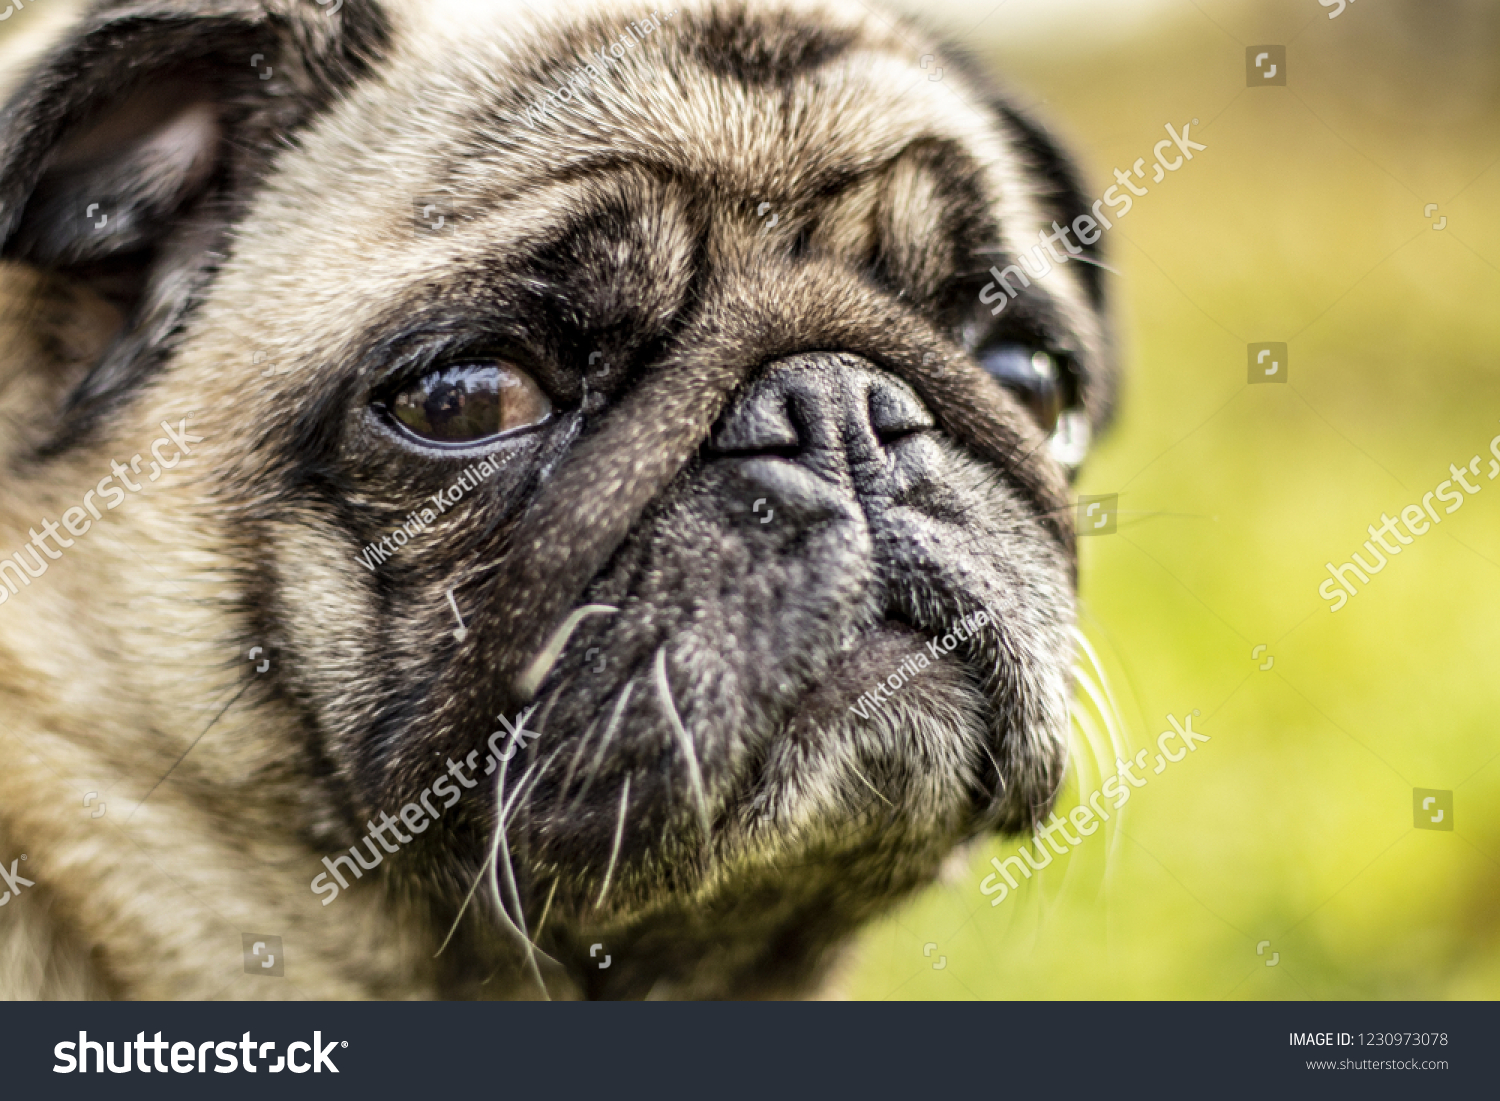 Portraits look at a beautiful lonely white fat dog pug making a funny sad